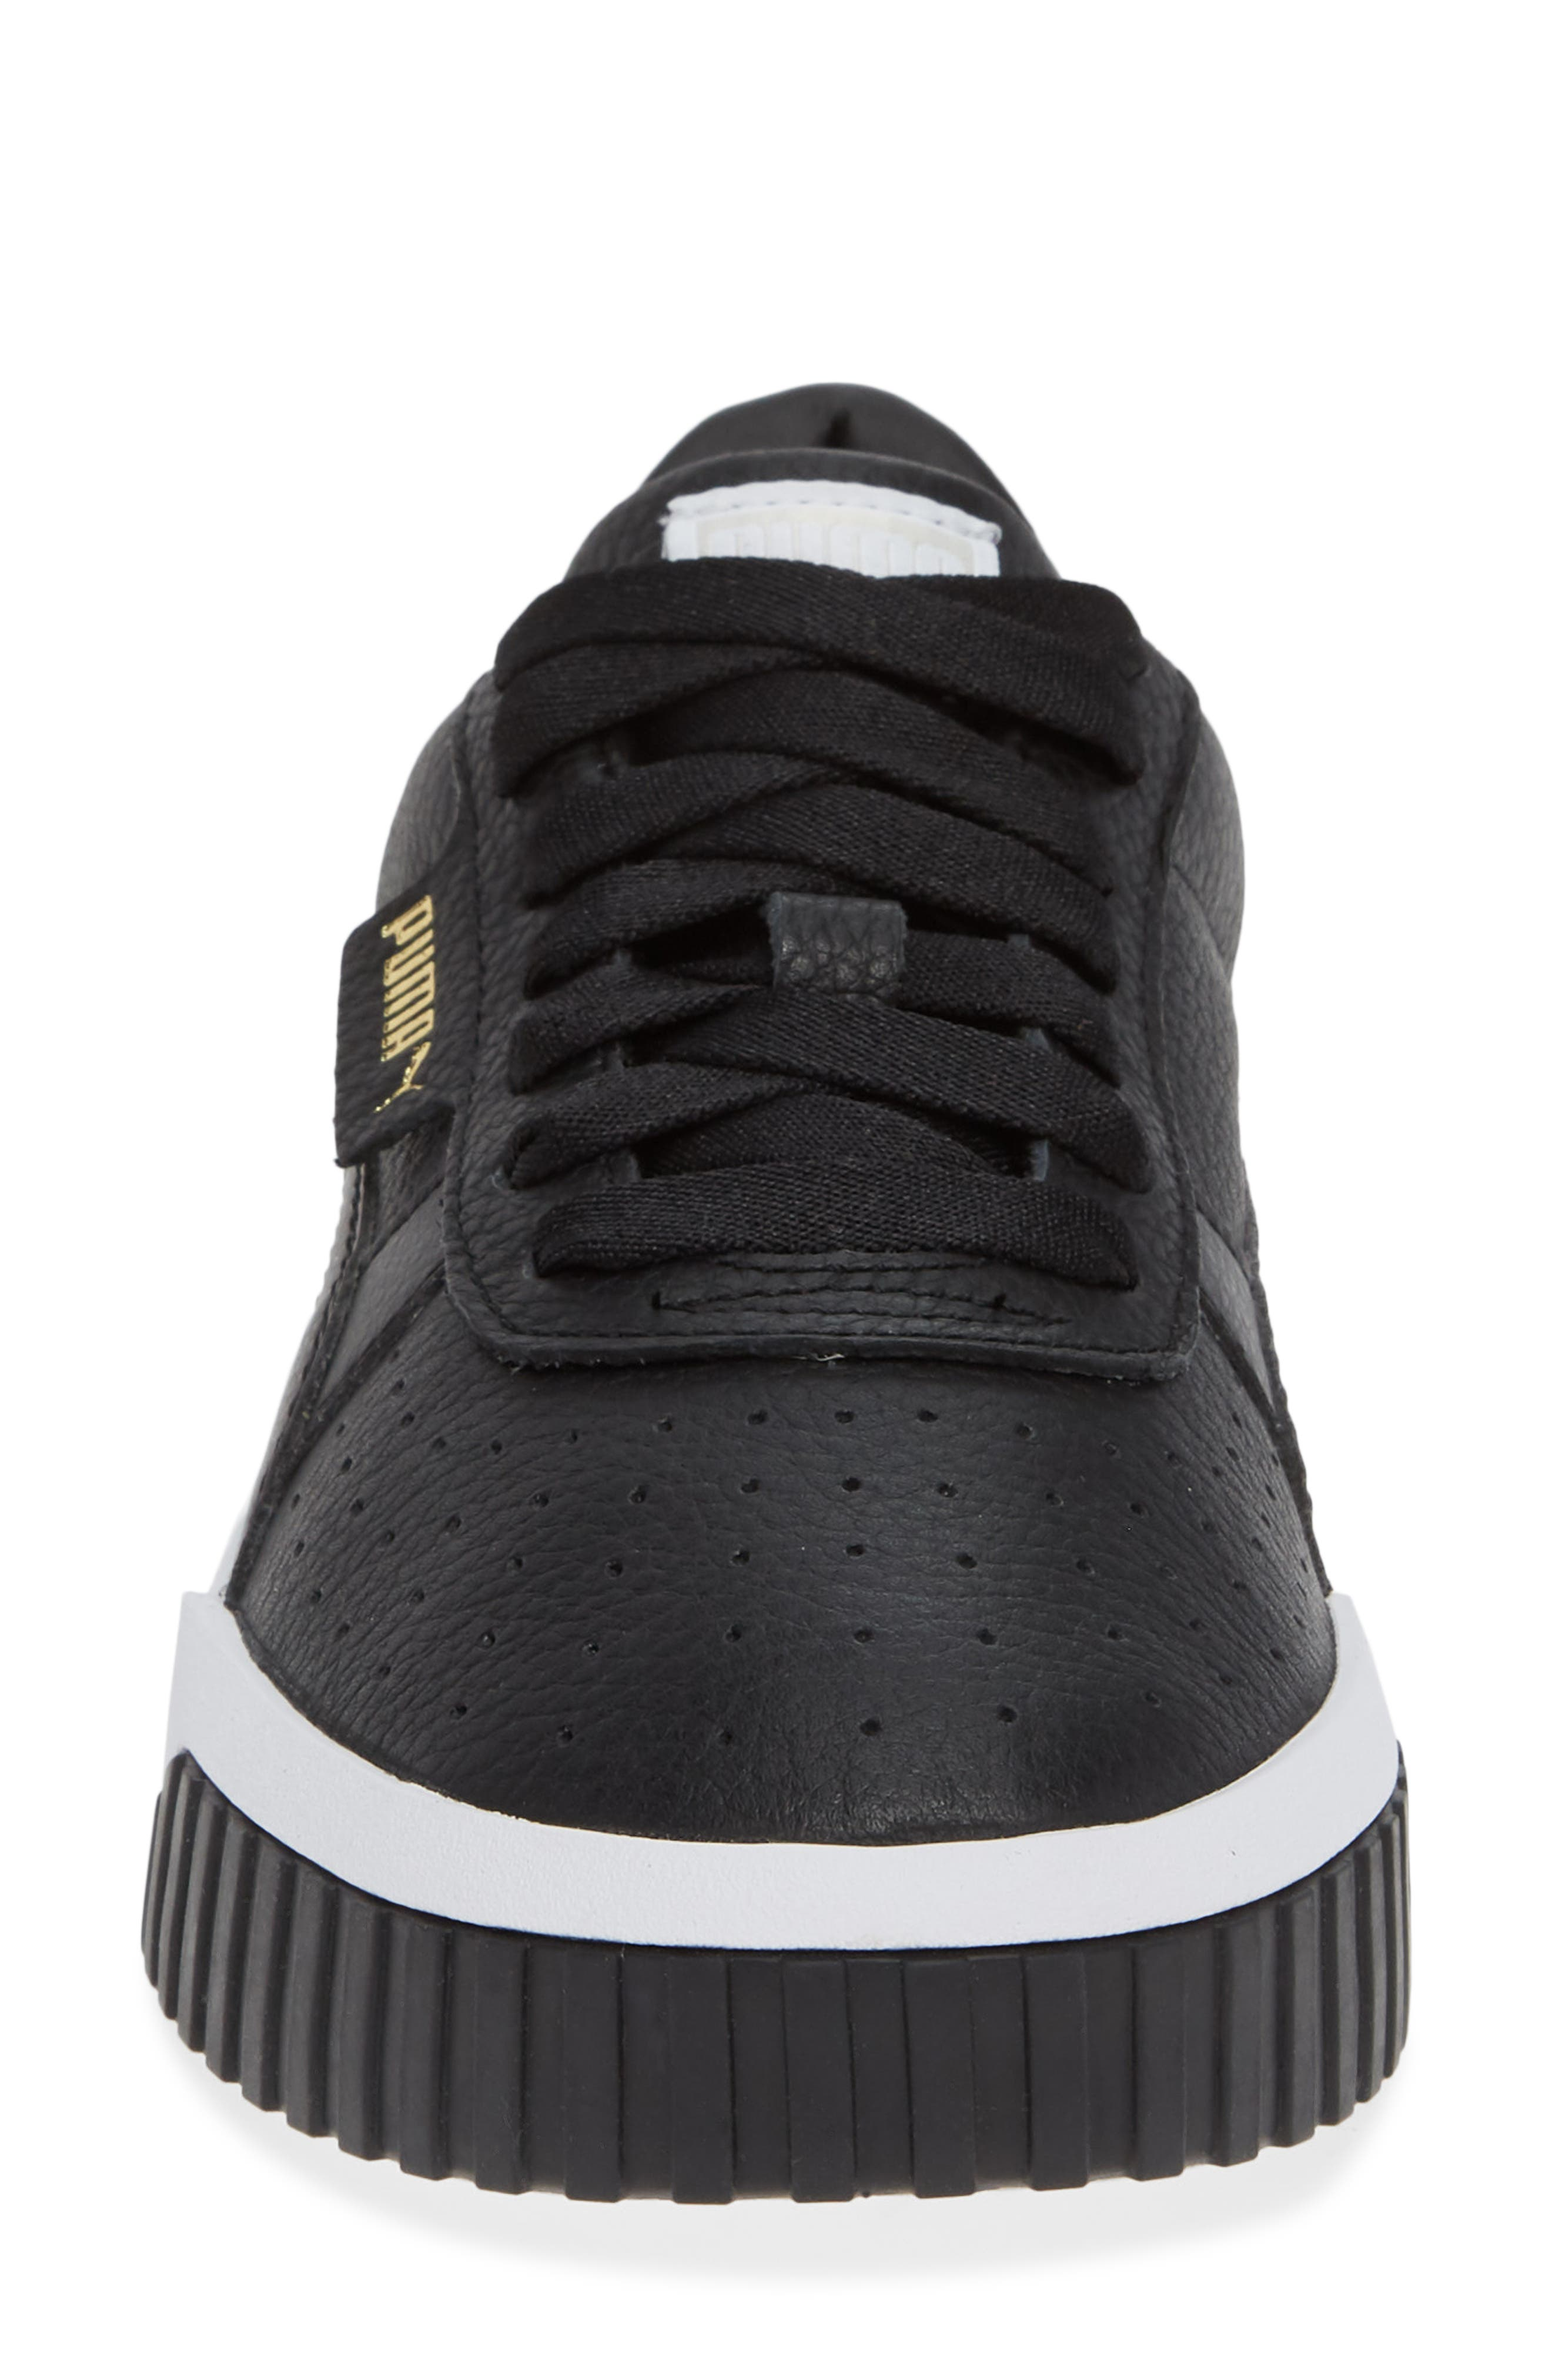 PUMA, Cali Sneaker, Alternate thumbnail 4, color, PUMA BLACK/ PUMA WHITE